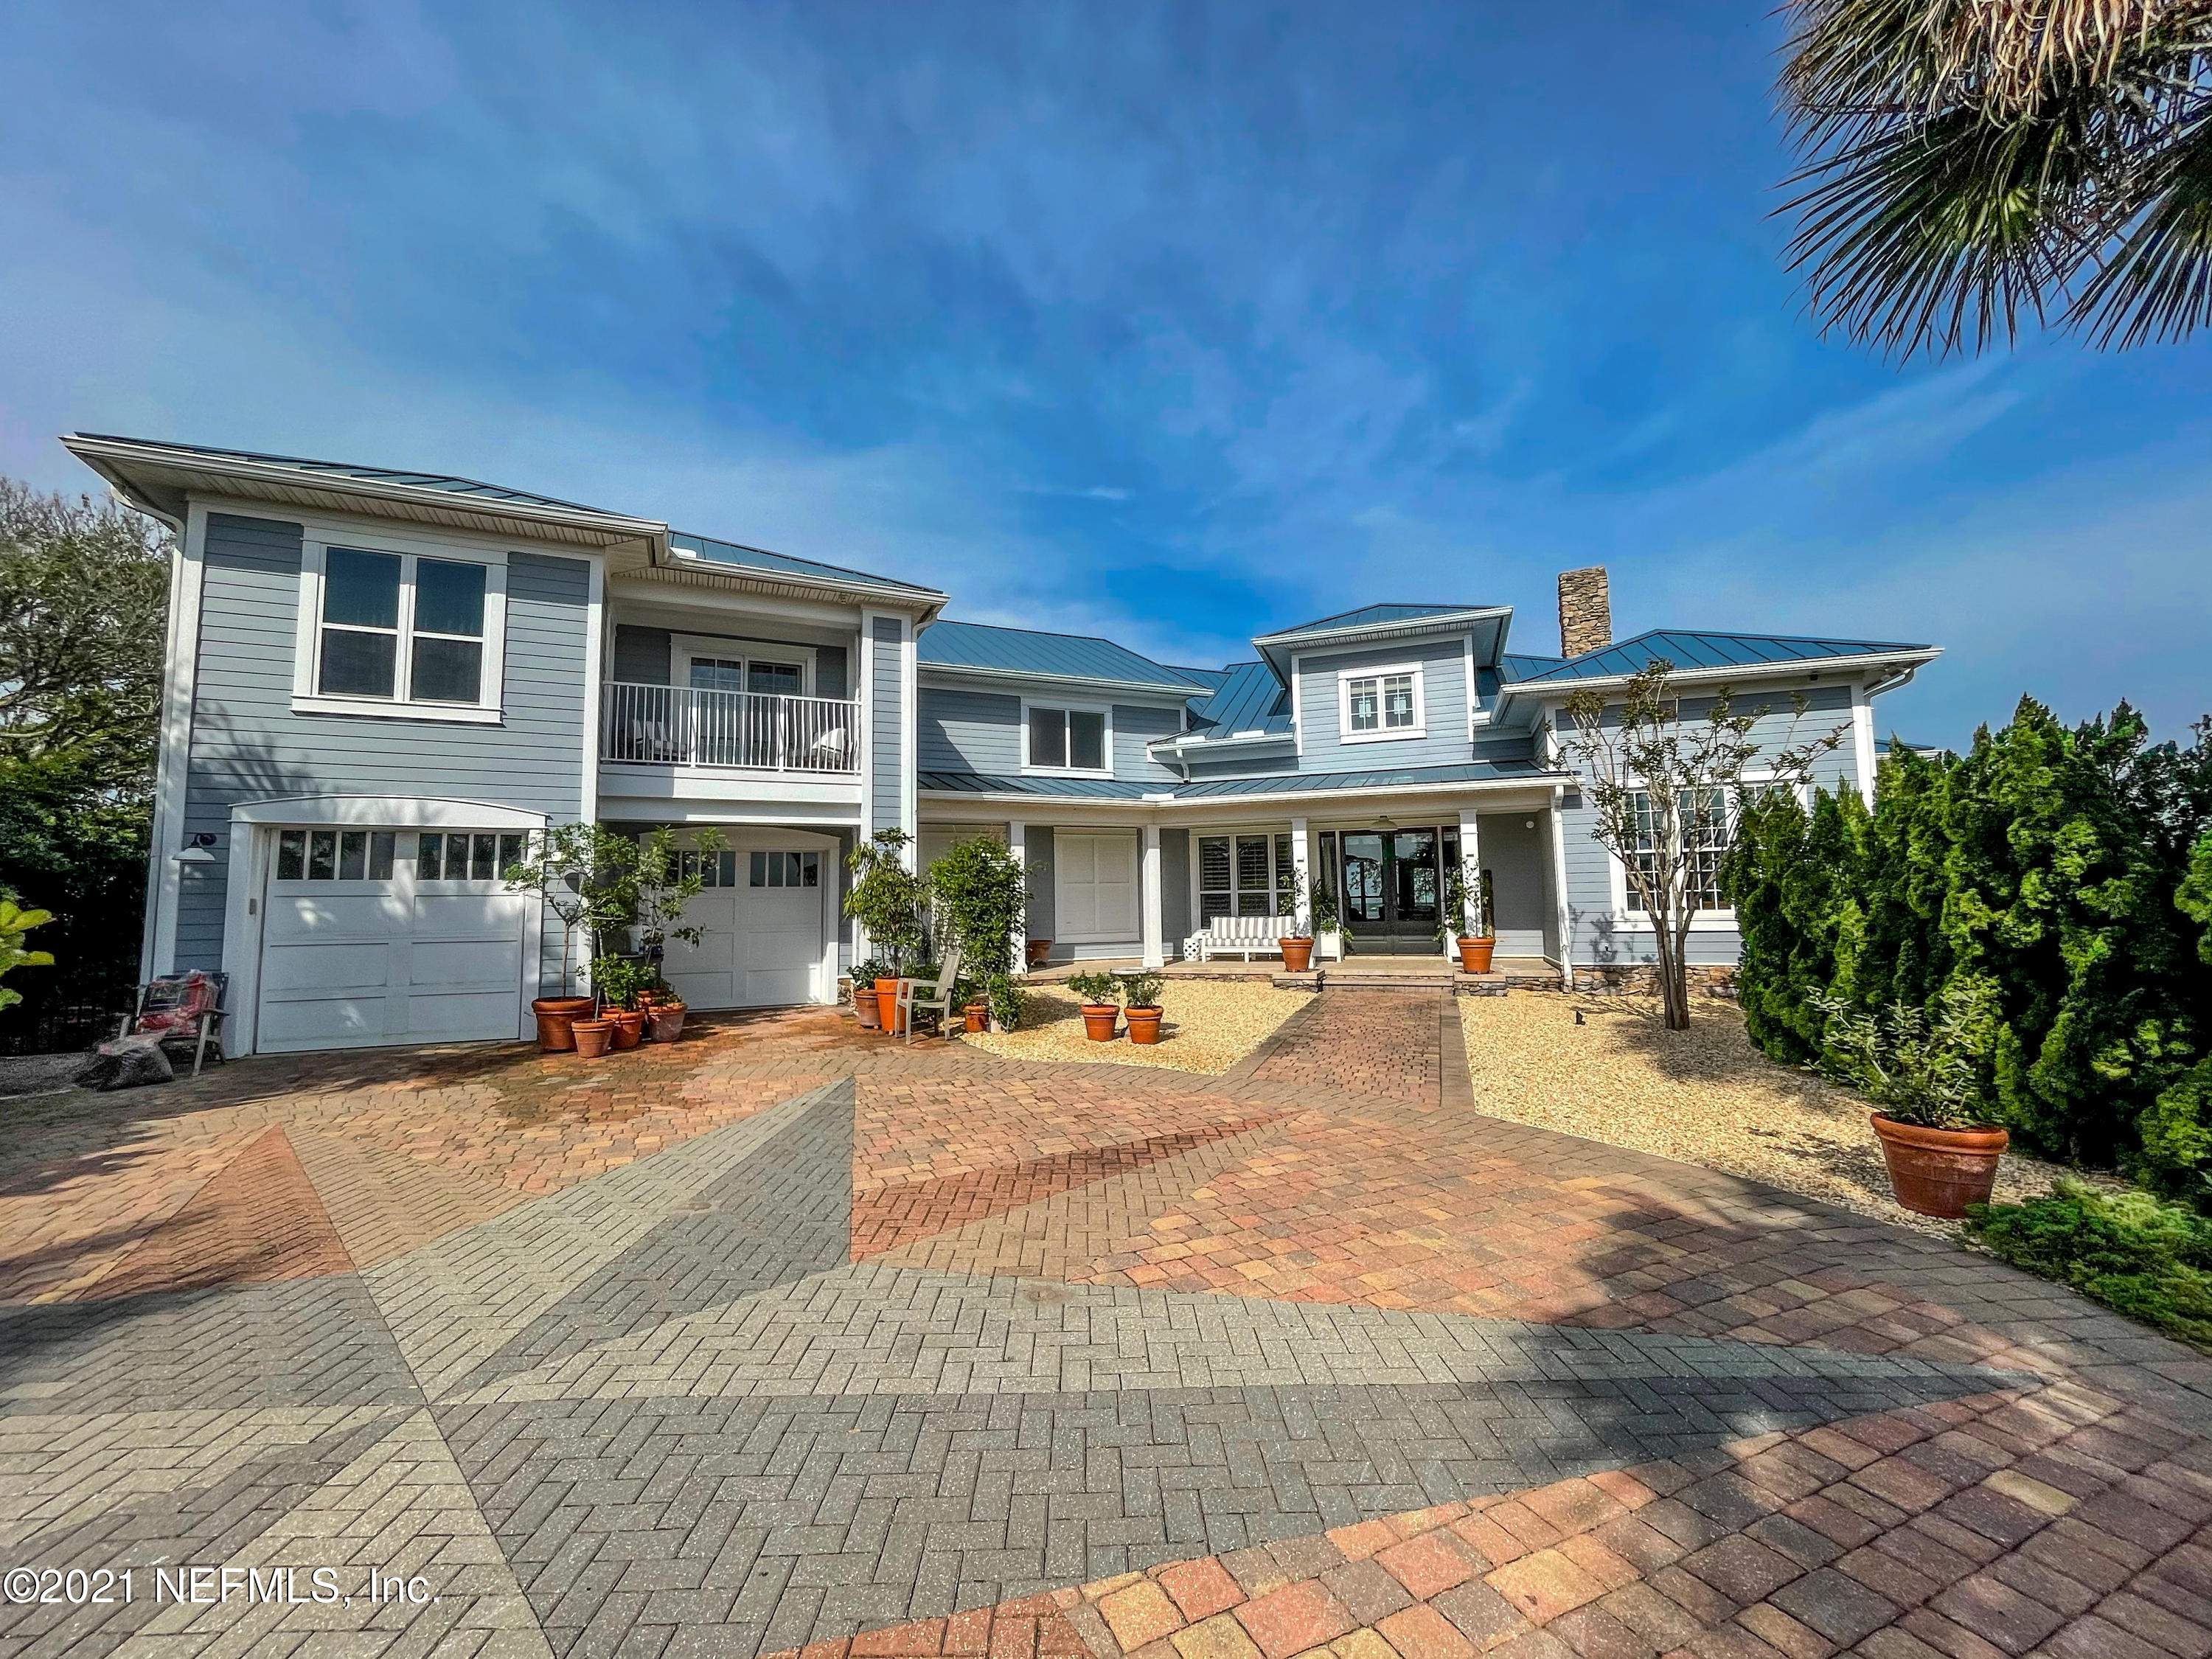 This COMPLETELY RENOVATED, peaceful oasis sits on 1.73 acres directly on the Intracoastal Waterway.  The architectural details of the Andrew Howard designed modern coastal interior are stunning. This home has been featured in Coastal Living Magazine & was featured on the  cover of Kiplinger Magazine in 2019. From the newly renovated master suite to the terra cotta backsplash to the custom kitchen hardware, this home has it all. The kitchen is magnificent and features custom cabinetry and a walk in pantry. There's  2 master suites one upstairs & one down positioned to leverage the incredible water views and the master baths are spectacular!  Set sail from your very own dock & be in the open ocean waters in minutes or take a quick walk & enjoy your day on the beach. Come live the SALT LIFE!